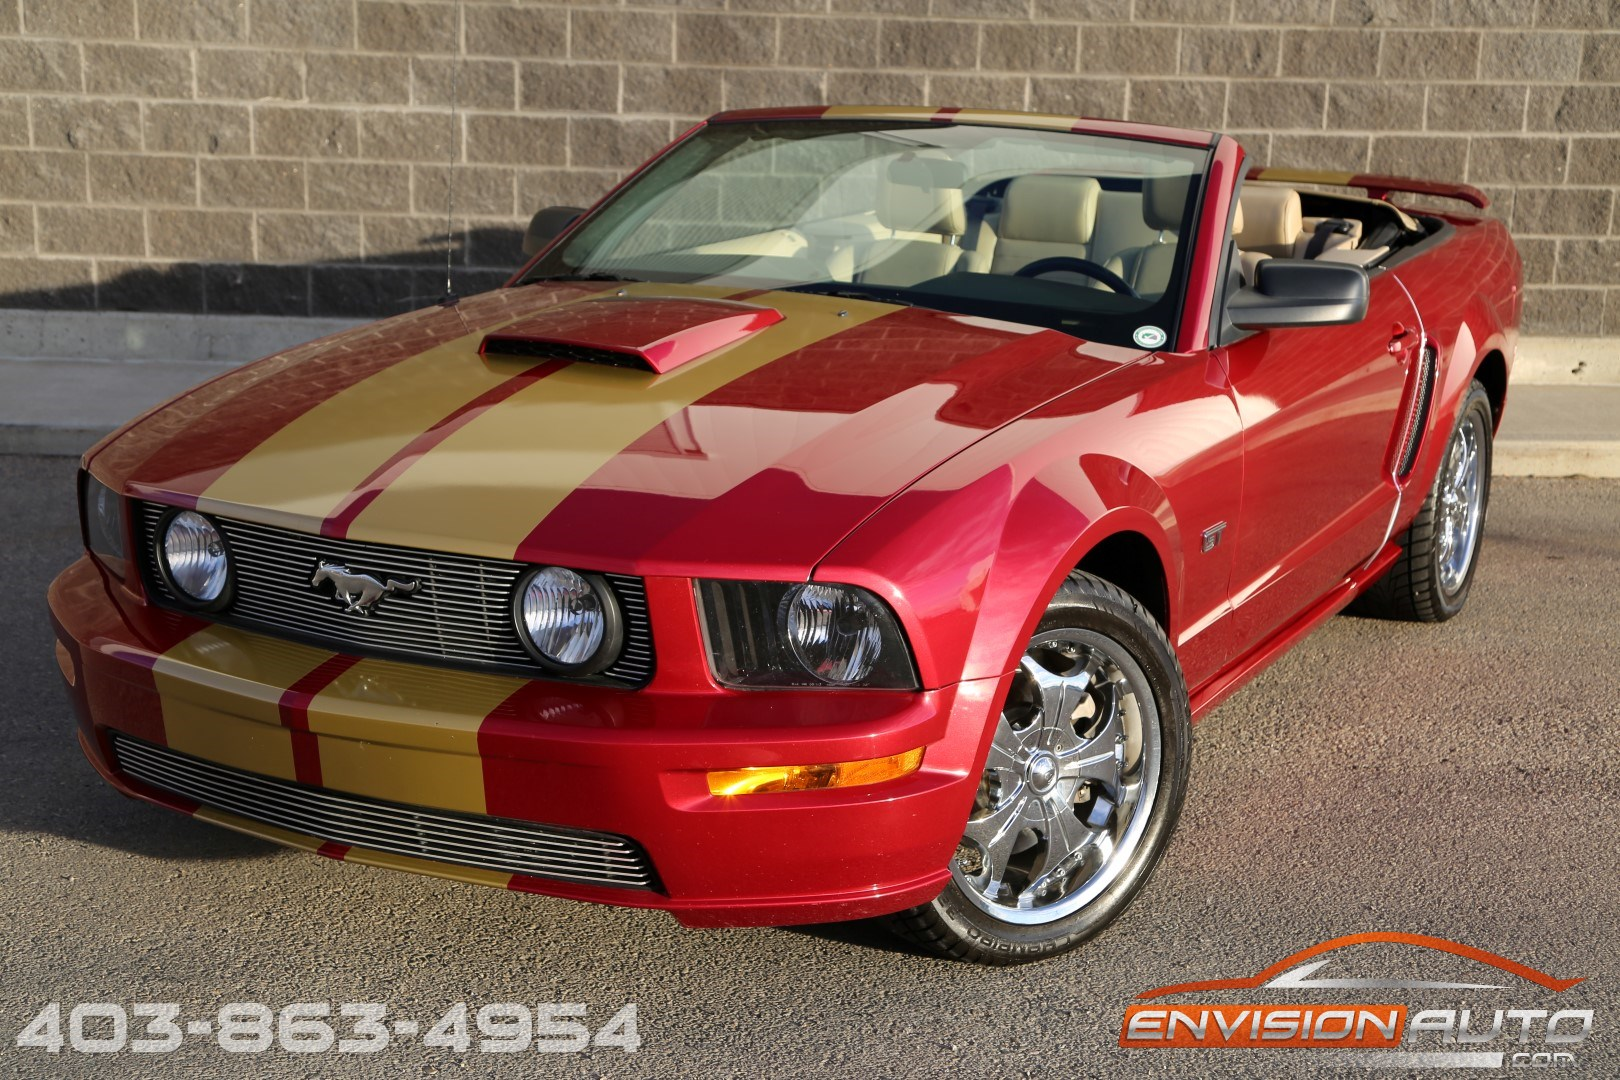 2006 Ford Mustang Gt Convertible 5 Speed Manual